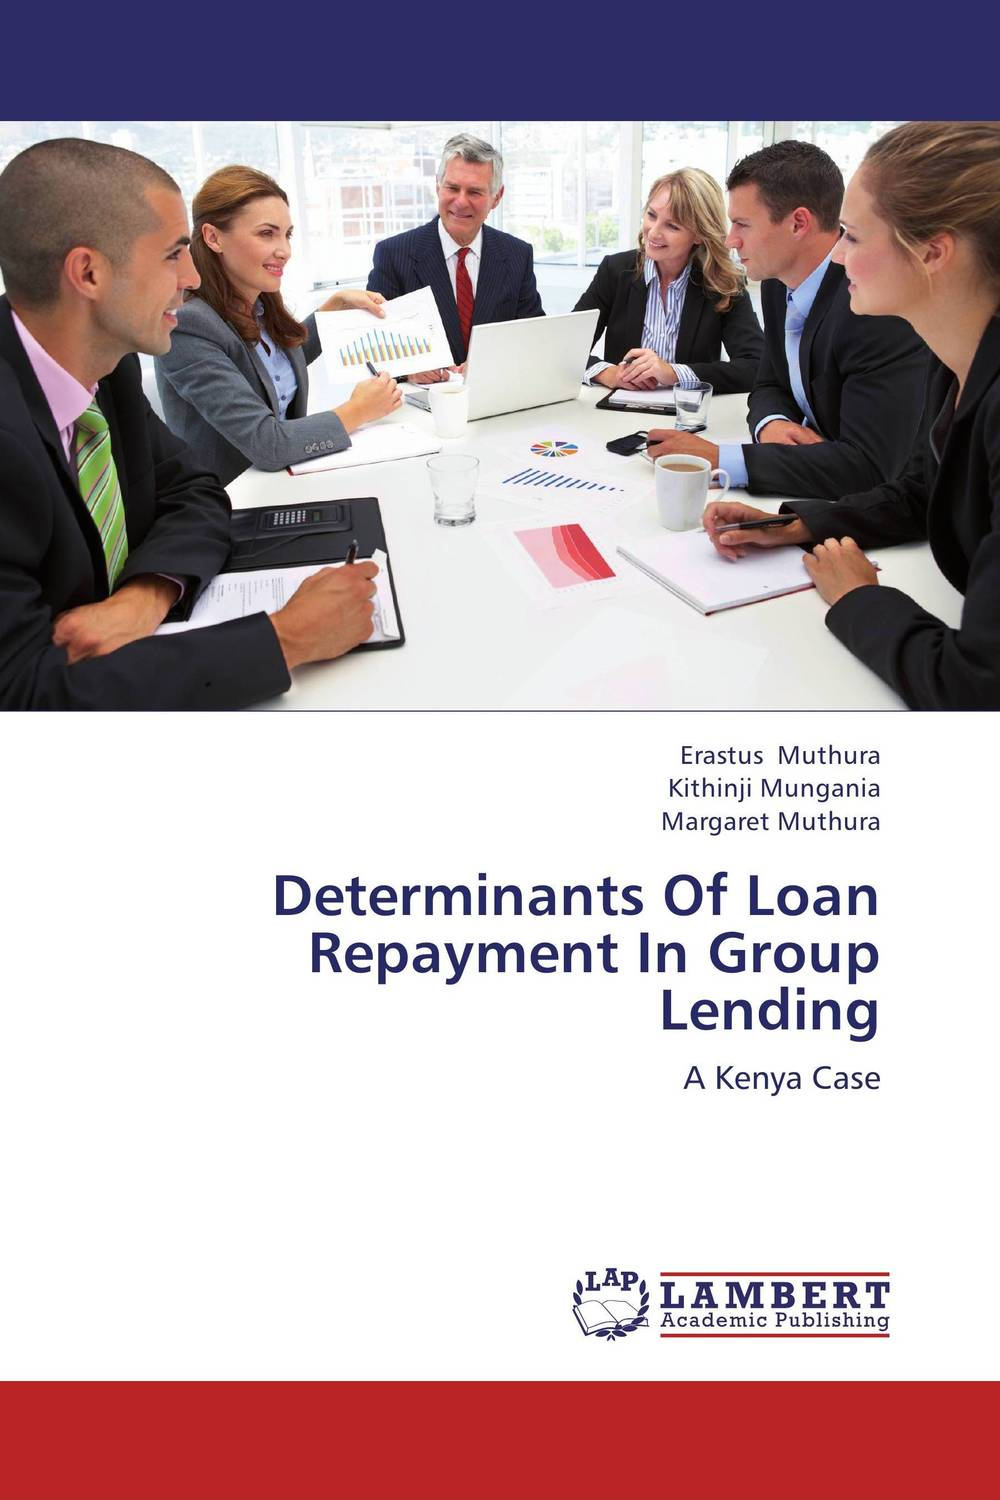 Determinants Of Loan Repayment In Group Lending